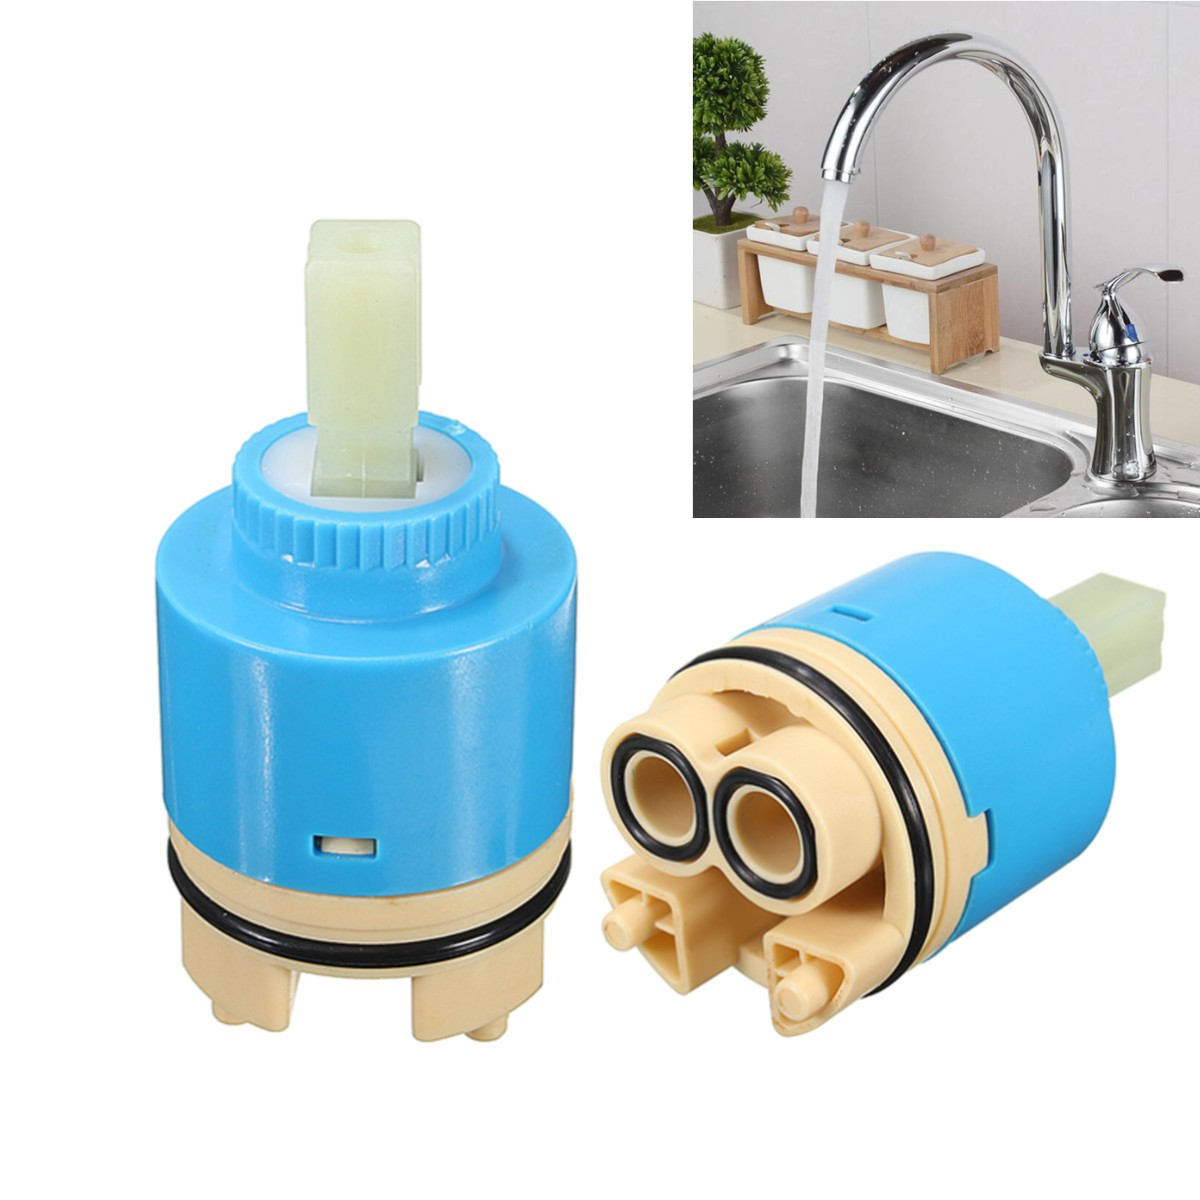 35//40mm Ceramic Cartridge Fittings Mixer Tap Valve Clear Body Shower Room Faucet